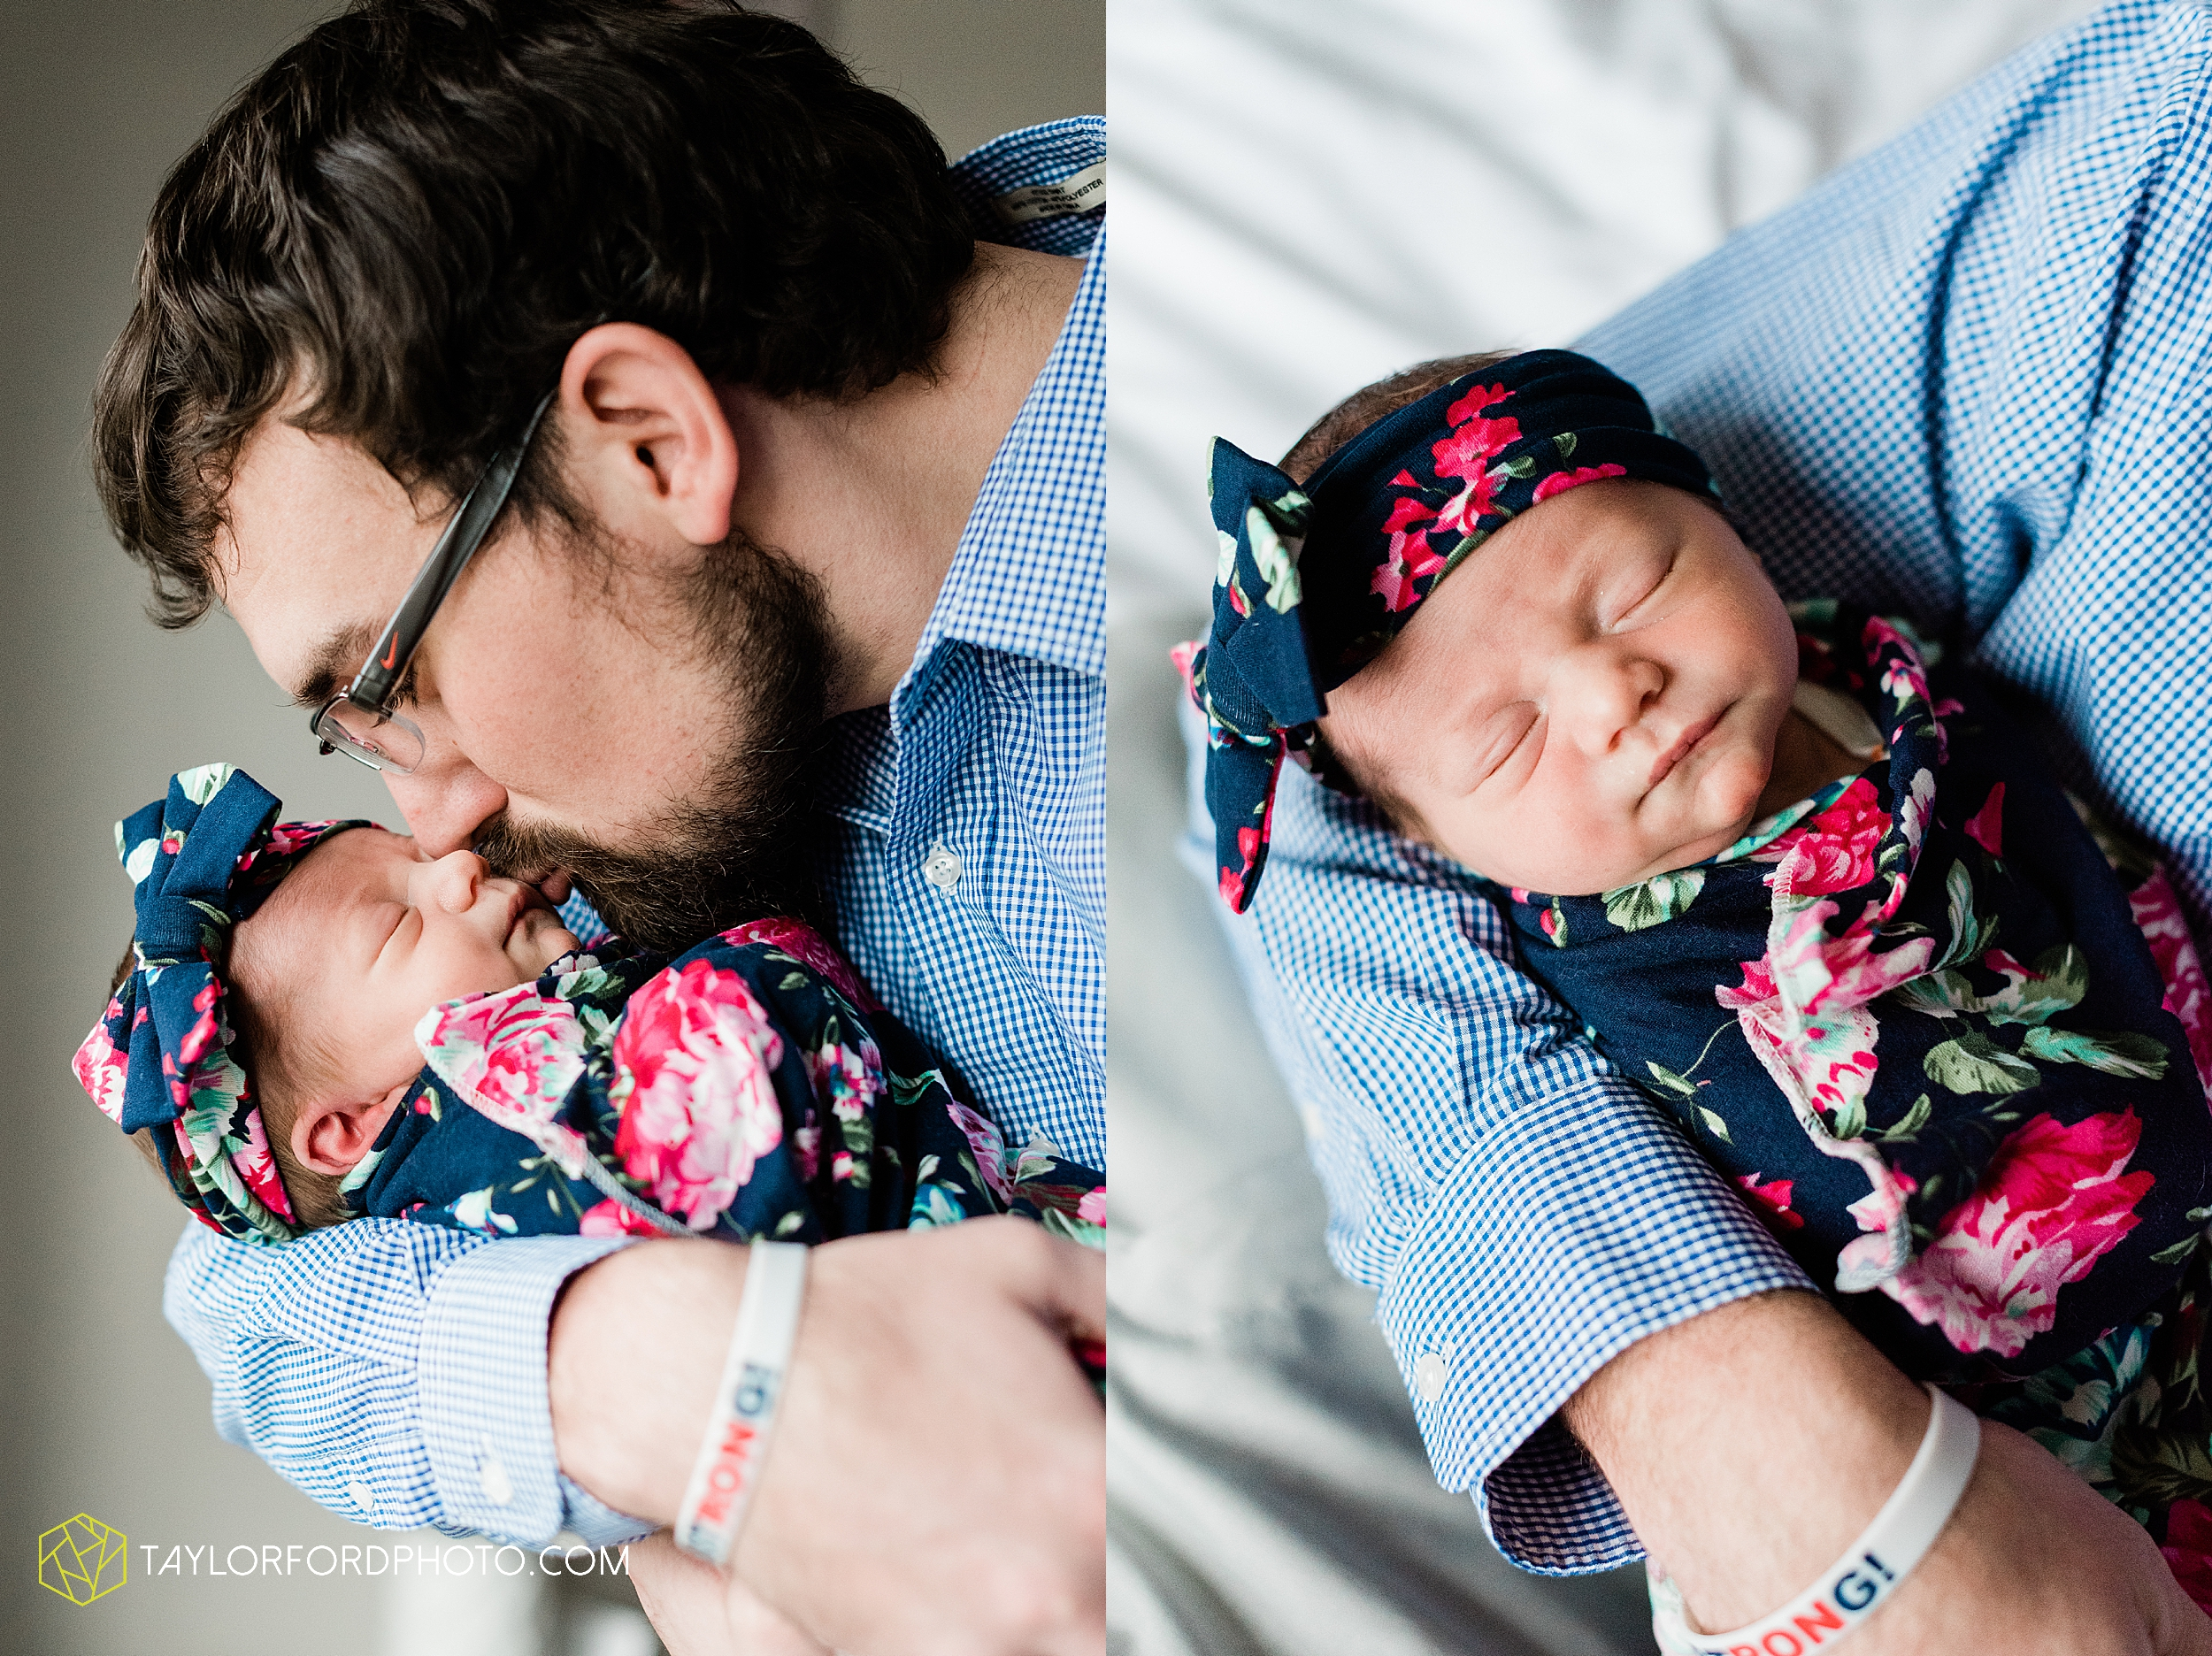 ashley-aaron-noraa-lifestyle-at-home-family-newborn-blacklick-columbus-ohio-photography-taylor-ford-hirschy-photographer_2343.jpg